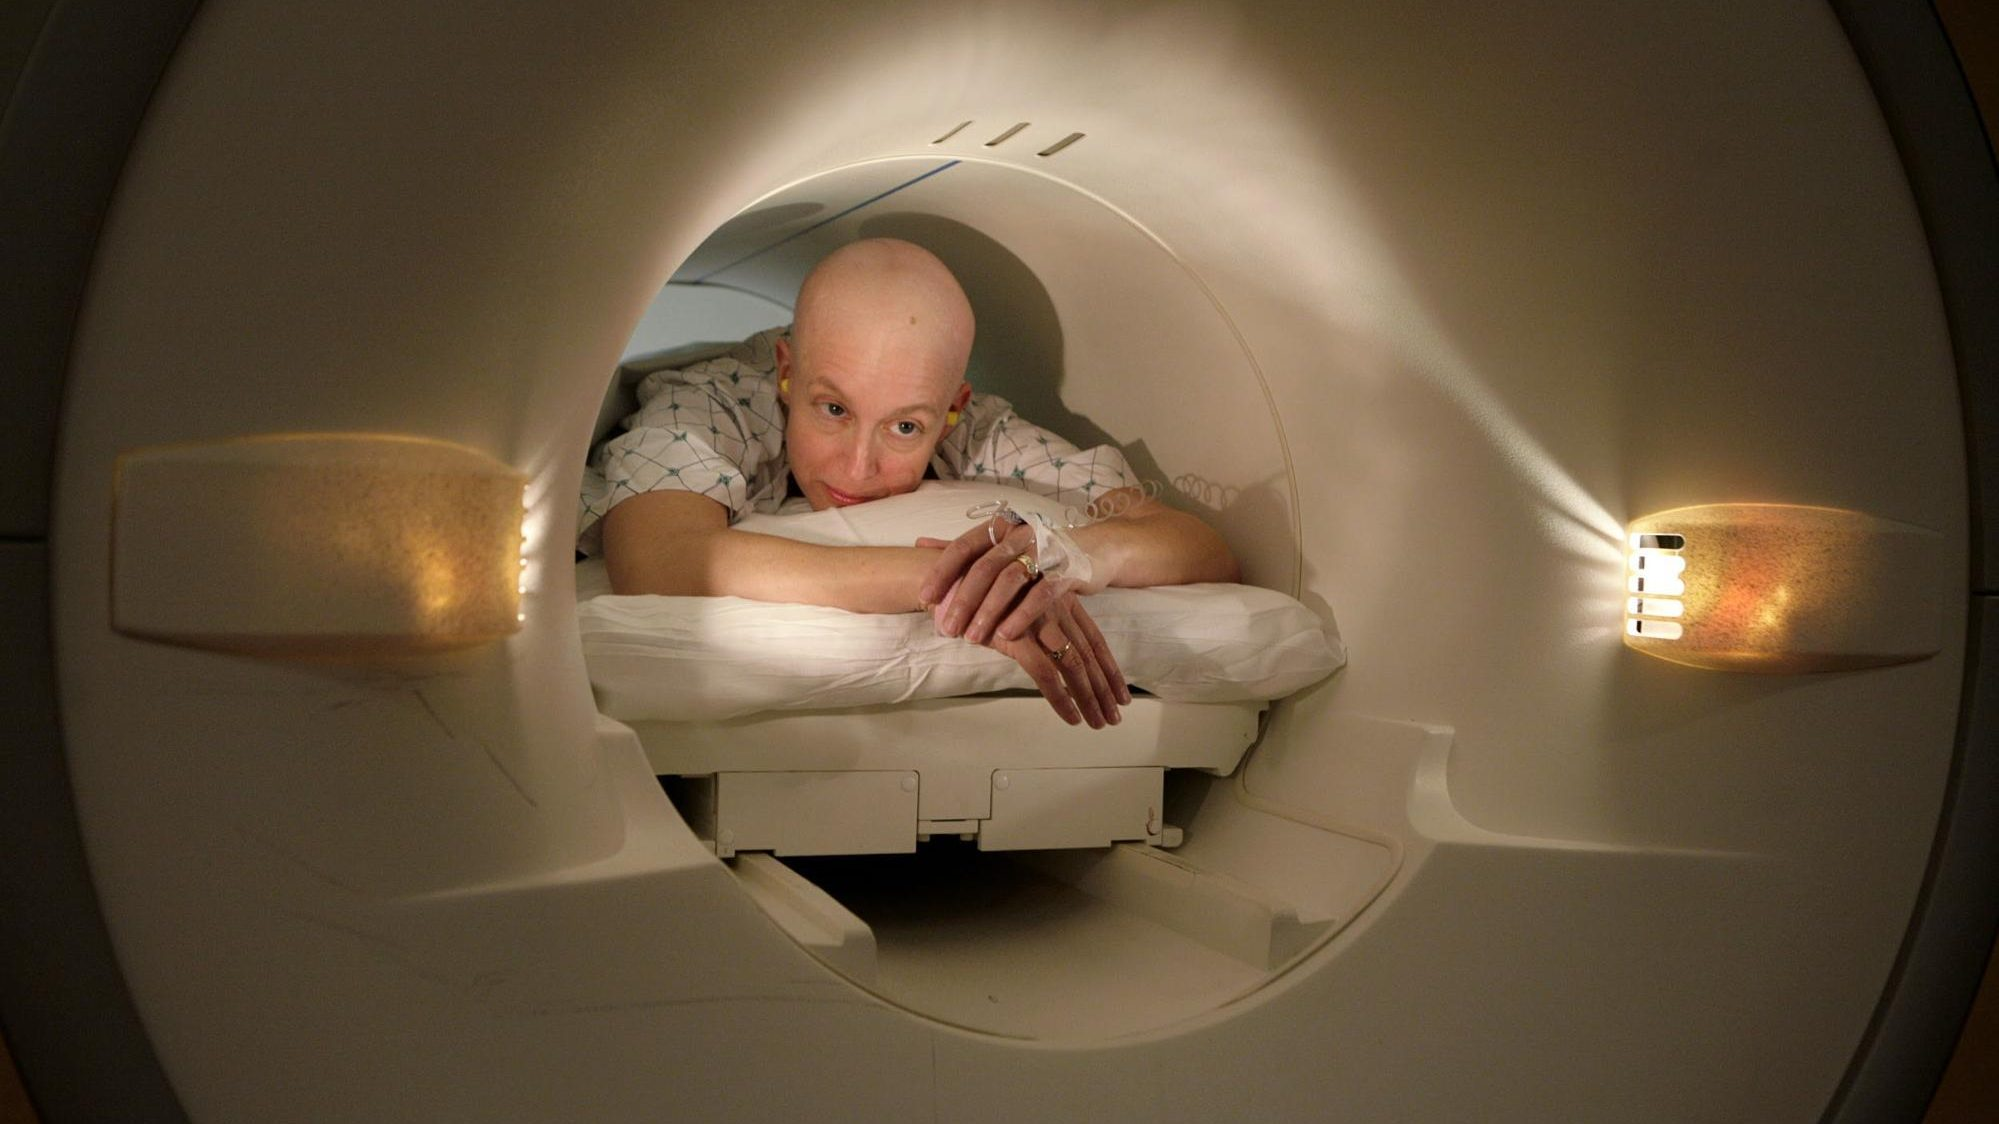 Cancer patient Deborah Charles lies inside the tube of a magnetic resonance imaging scanner during an MRI examination of her breasts at Georgetown University Hospital in Washington May 23, 2007.